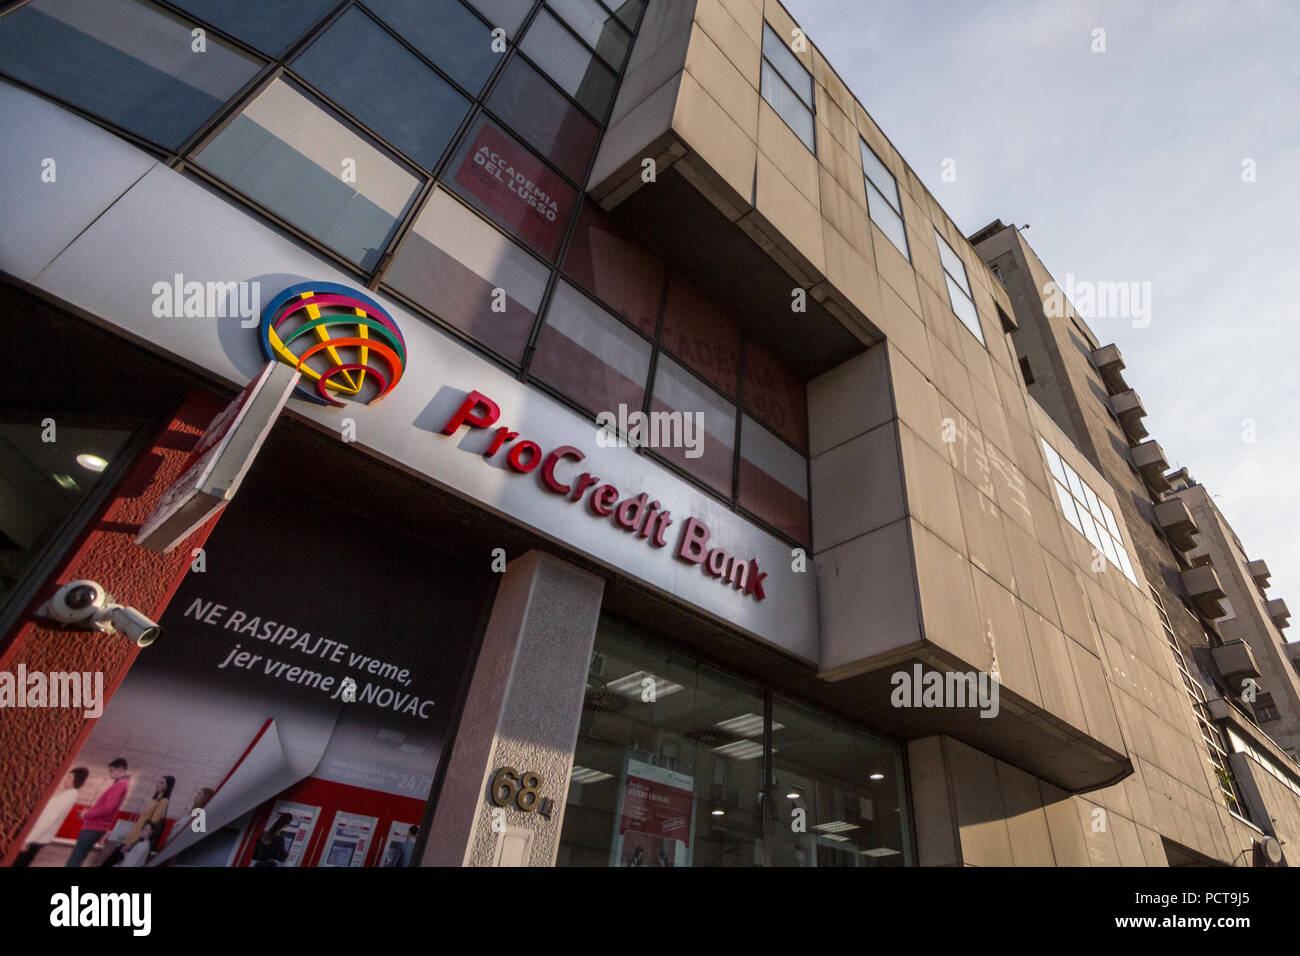 BELGRADE, SERBIA - JULY 25, 2018: ProCreditBank logo on their main office for Serbia. Pro Credit Bank is a German financial institution specialized in - Stock Image